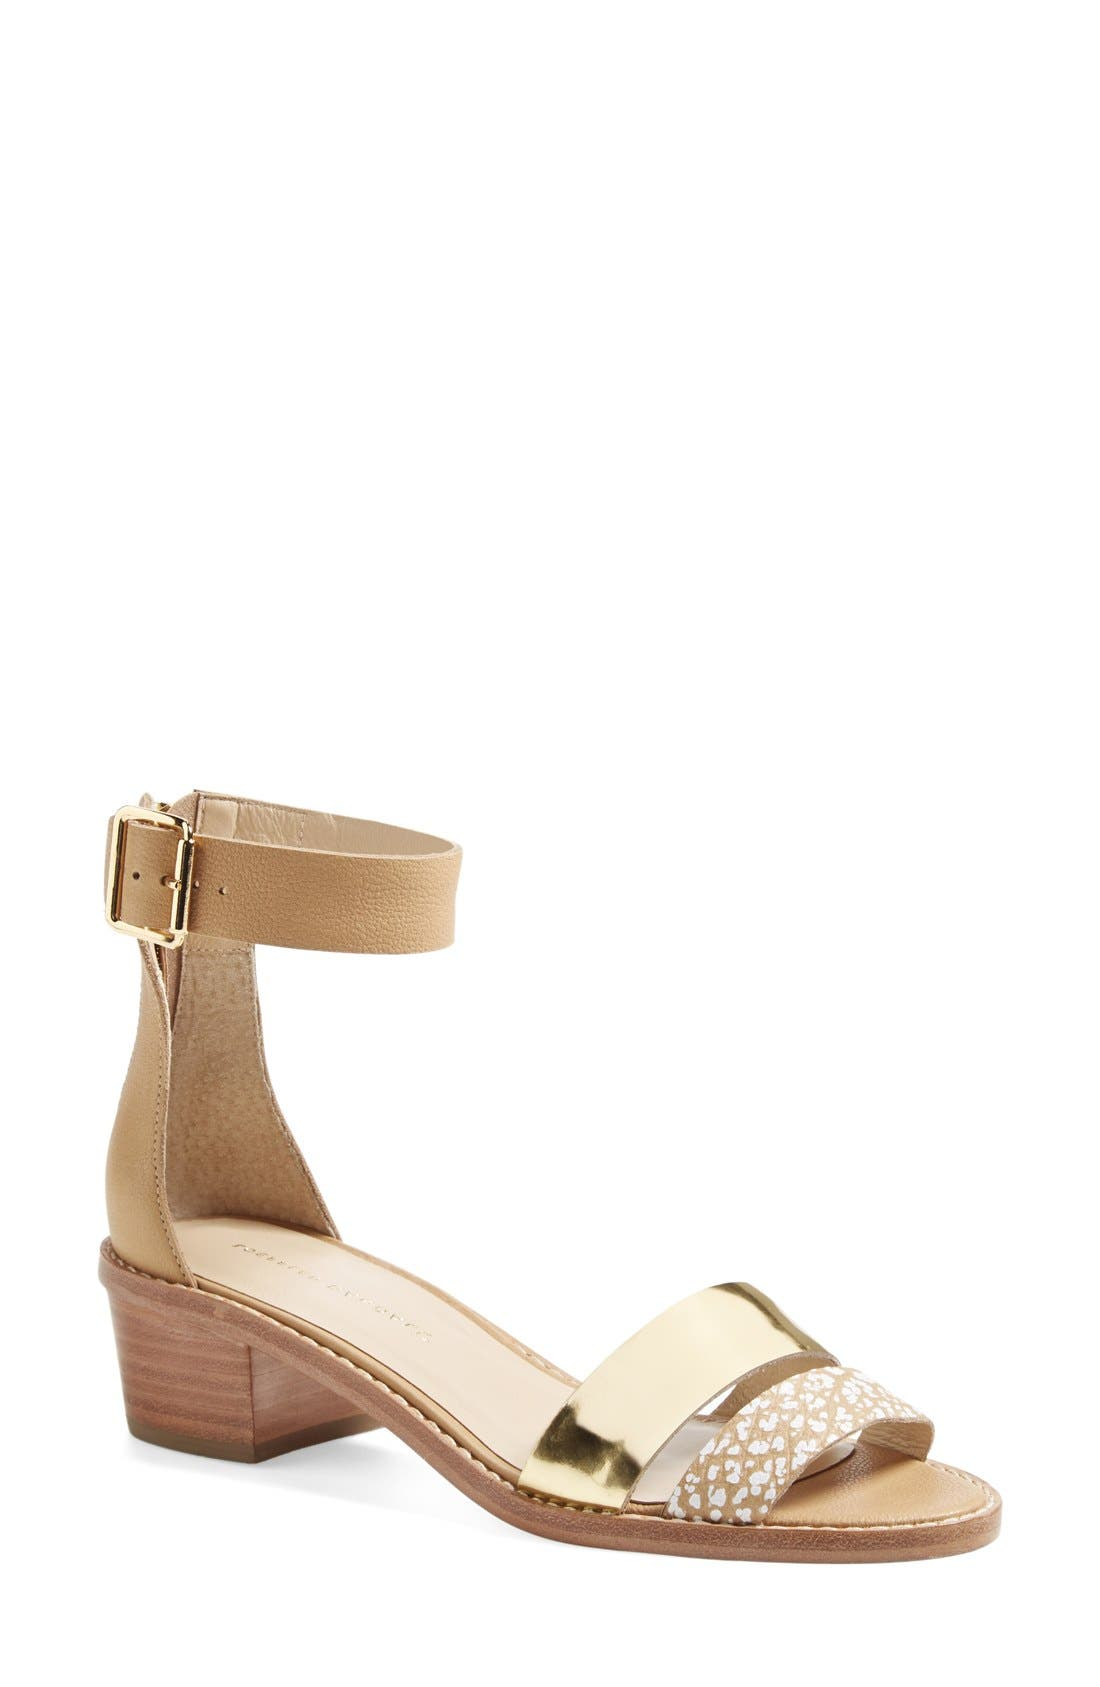 'Henry' Leather Sandal,                         Main,                         color, Natural/ Gold Mix